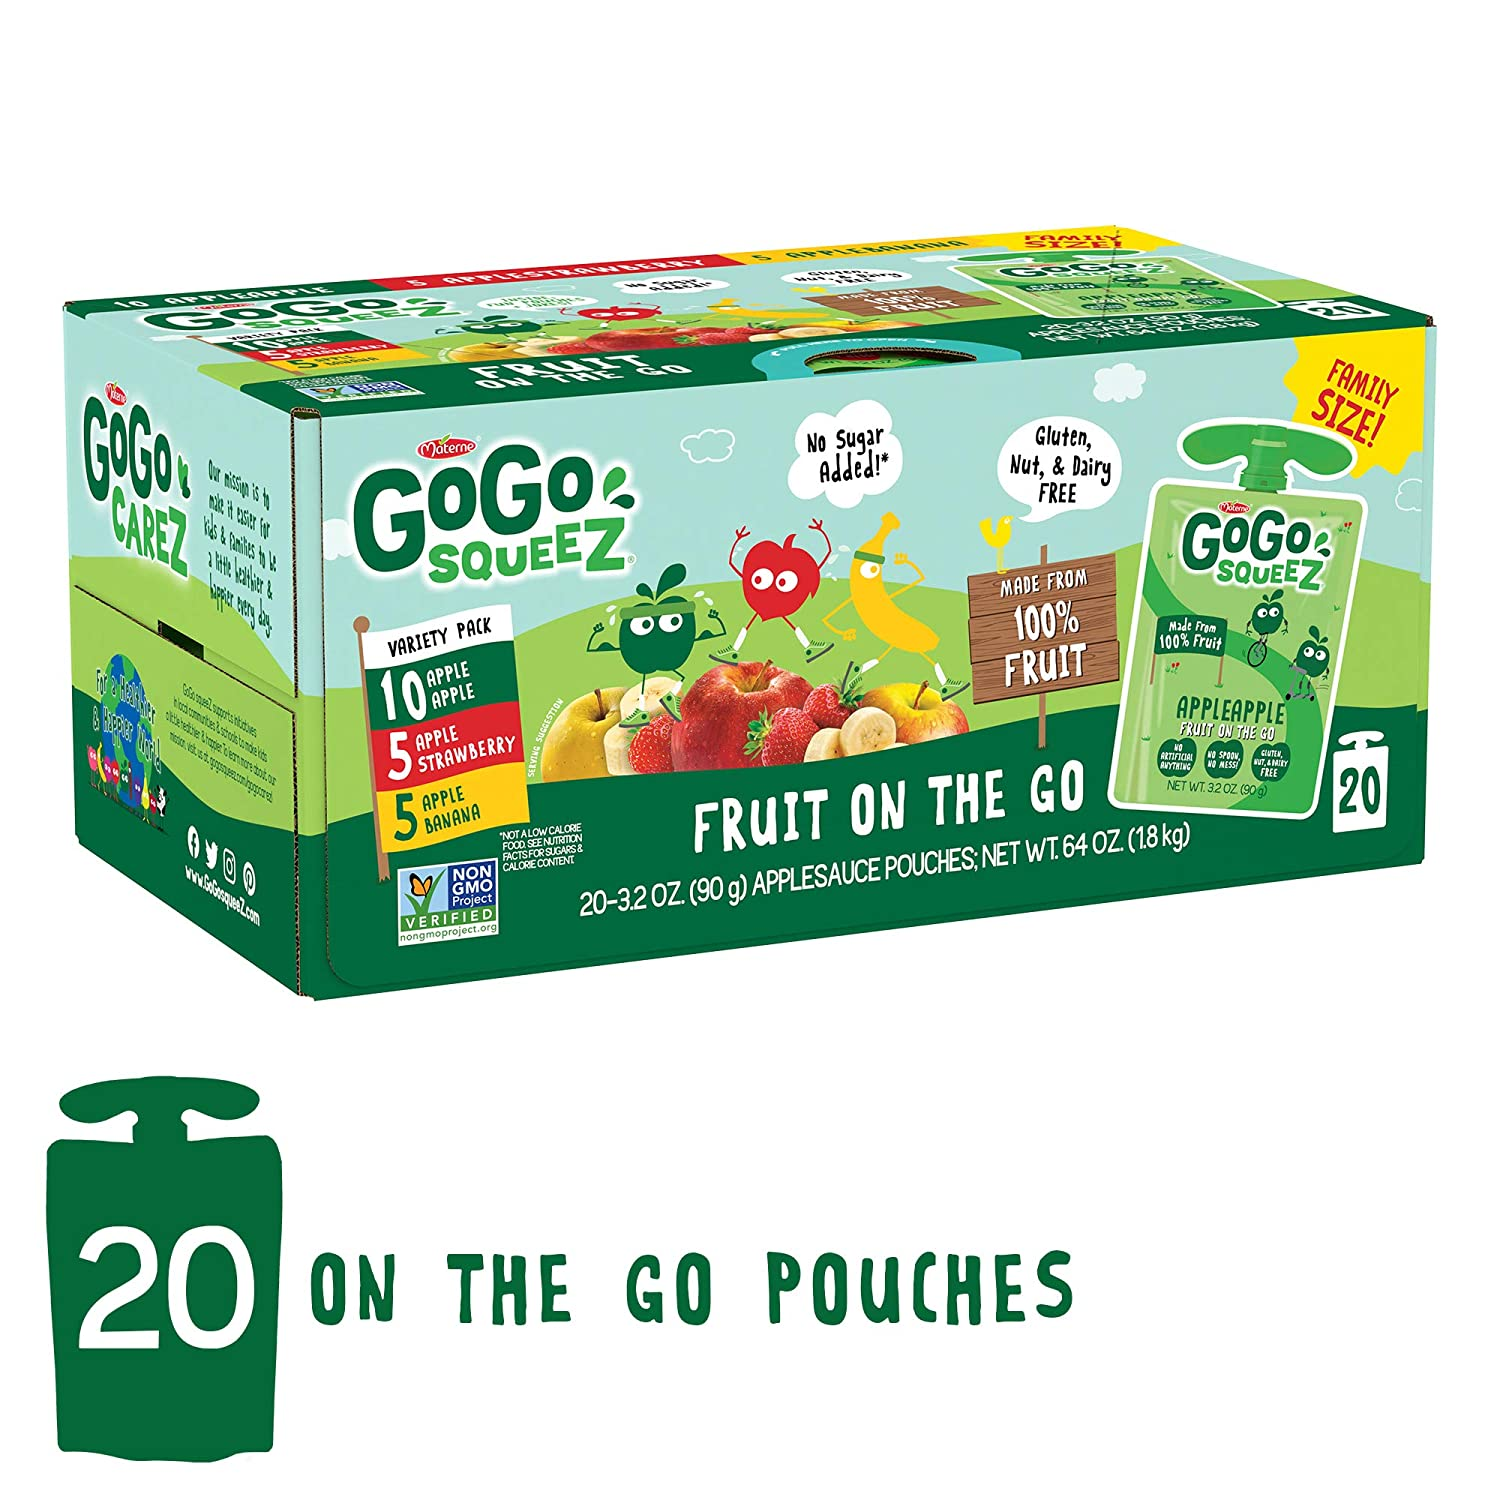 GoGo squeeZ Applesauce on the Go, Variety Pack (Apple/Banana/Strawberry), 3.2 Ounce (20 Pouches), Gluten Free, Vegan Friendly, Unsweetened, Recloseable BPA Free Pouch (Packaging May Vary)